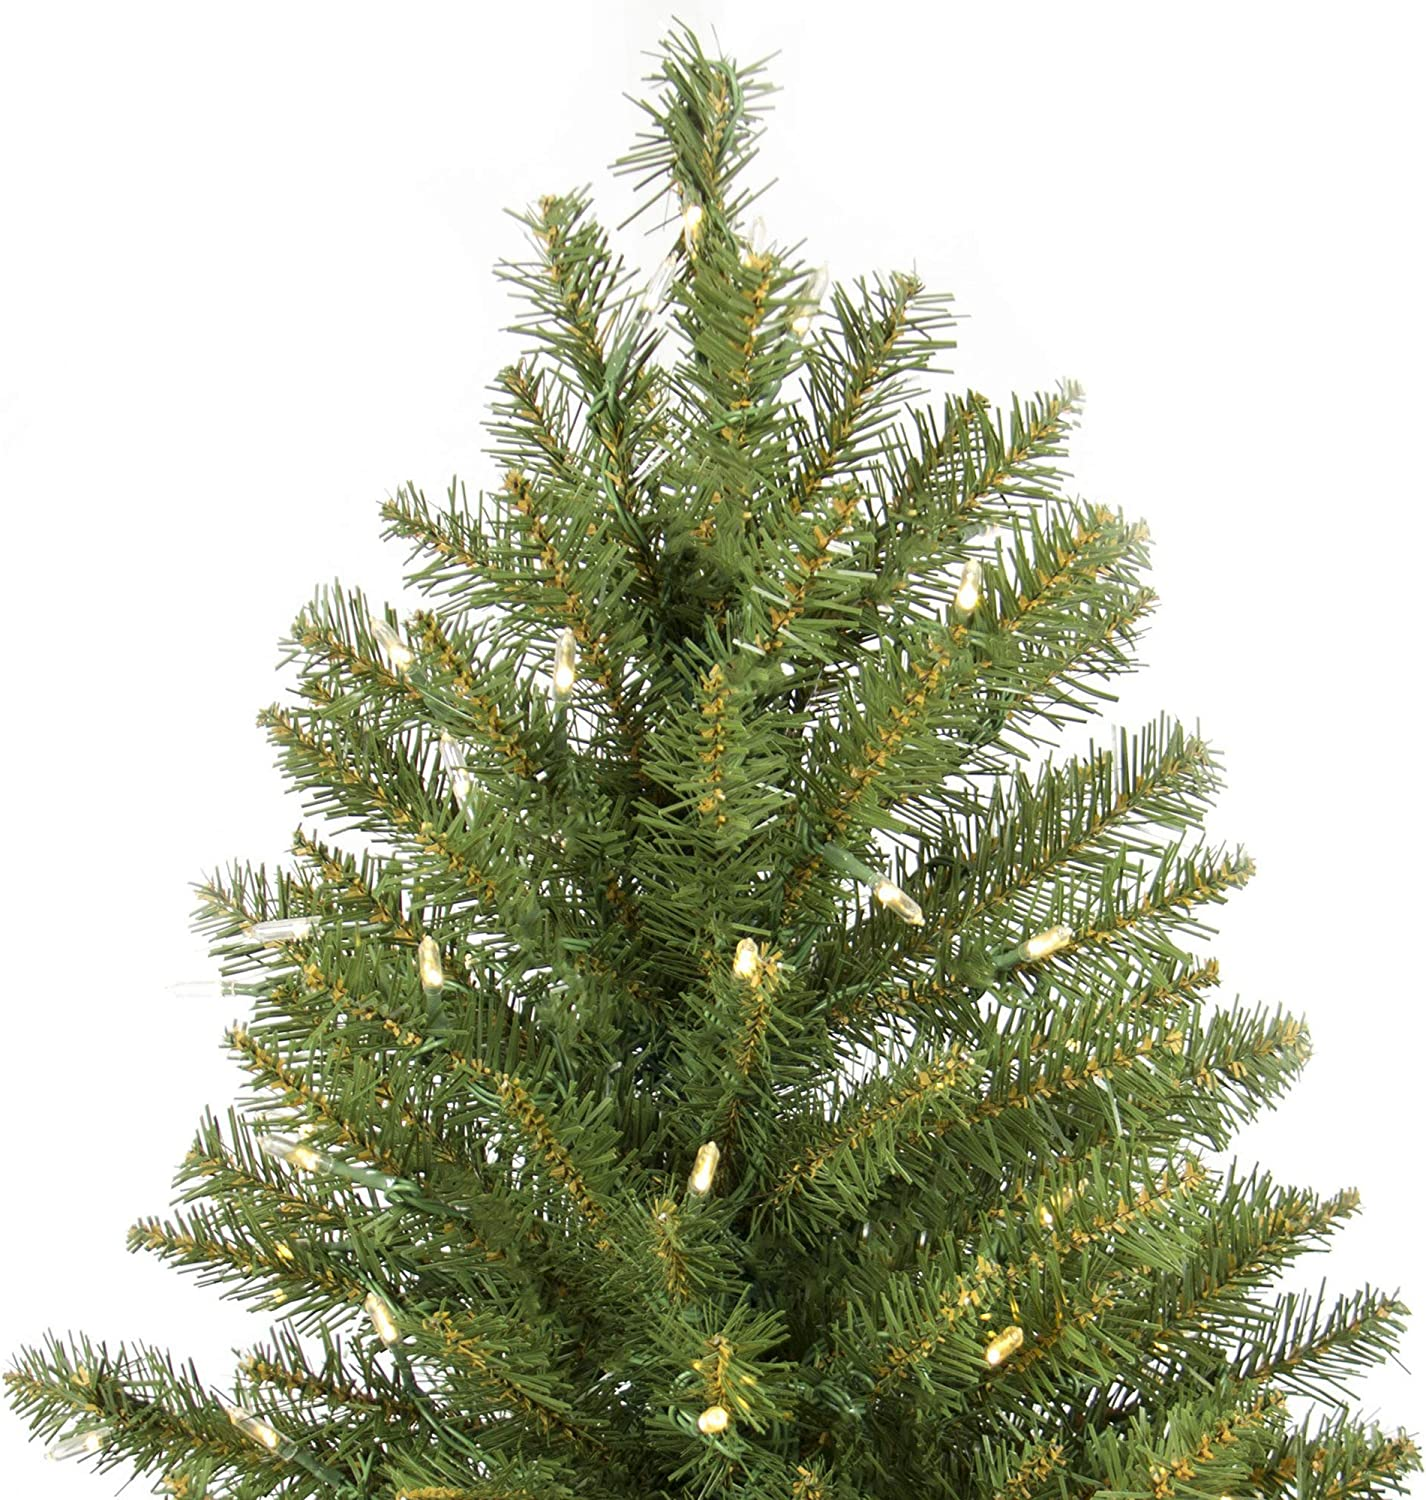 Green Best Choice Products 7 5ft Pre Lit Hinged Douglas Full Fir Artificial Christmas Tree Holiday Decoration W 2 254 Branch Tips Foldable Metal Stand 700 Warm White Lights Easy Assembly Trees